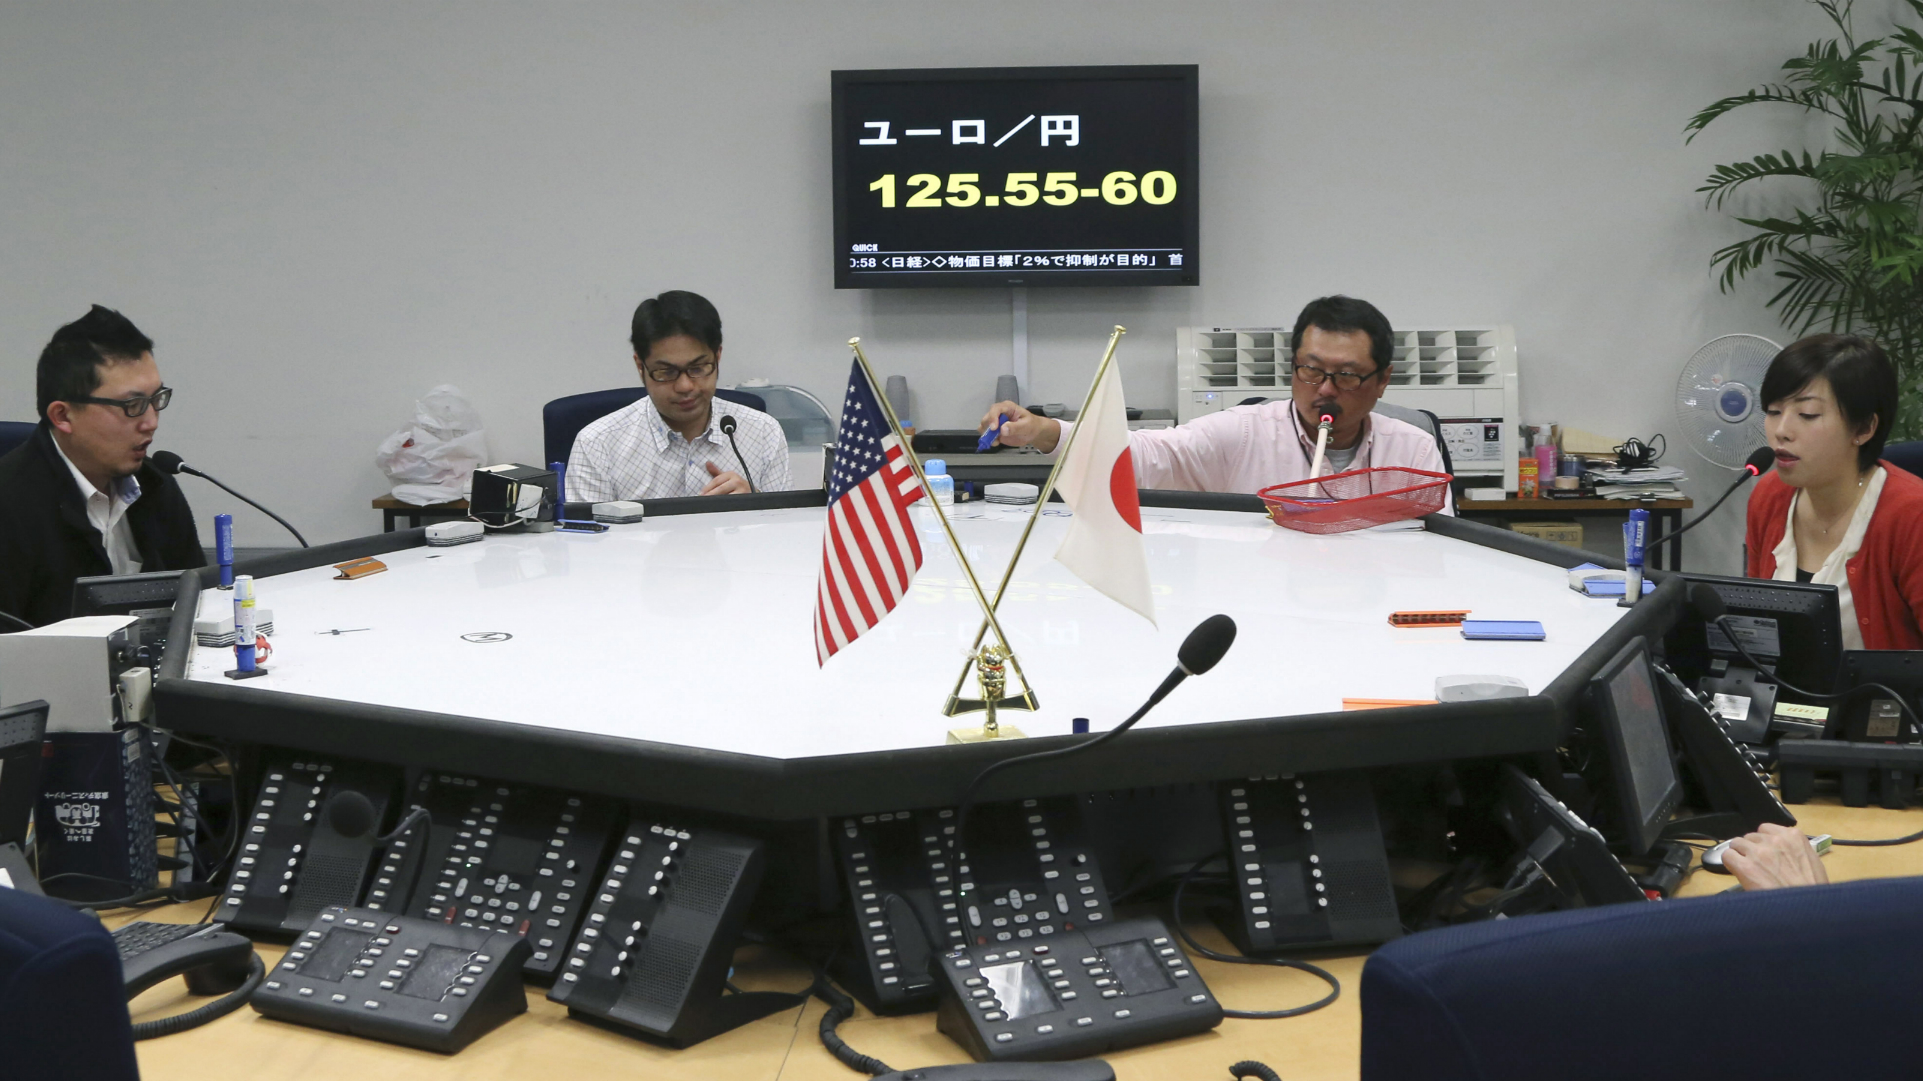 Foreign exchange brokers work in front of a screen displaying the day's euro rate equaling between 125.55 - 125.60 yen, at an office in Tokyo, Monday, Feb. 18, 2013. Last week, the yen fell to a near three-year low against the dollar and the euro.